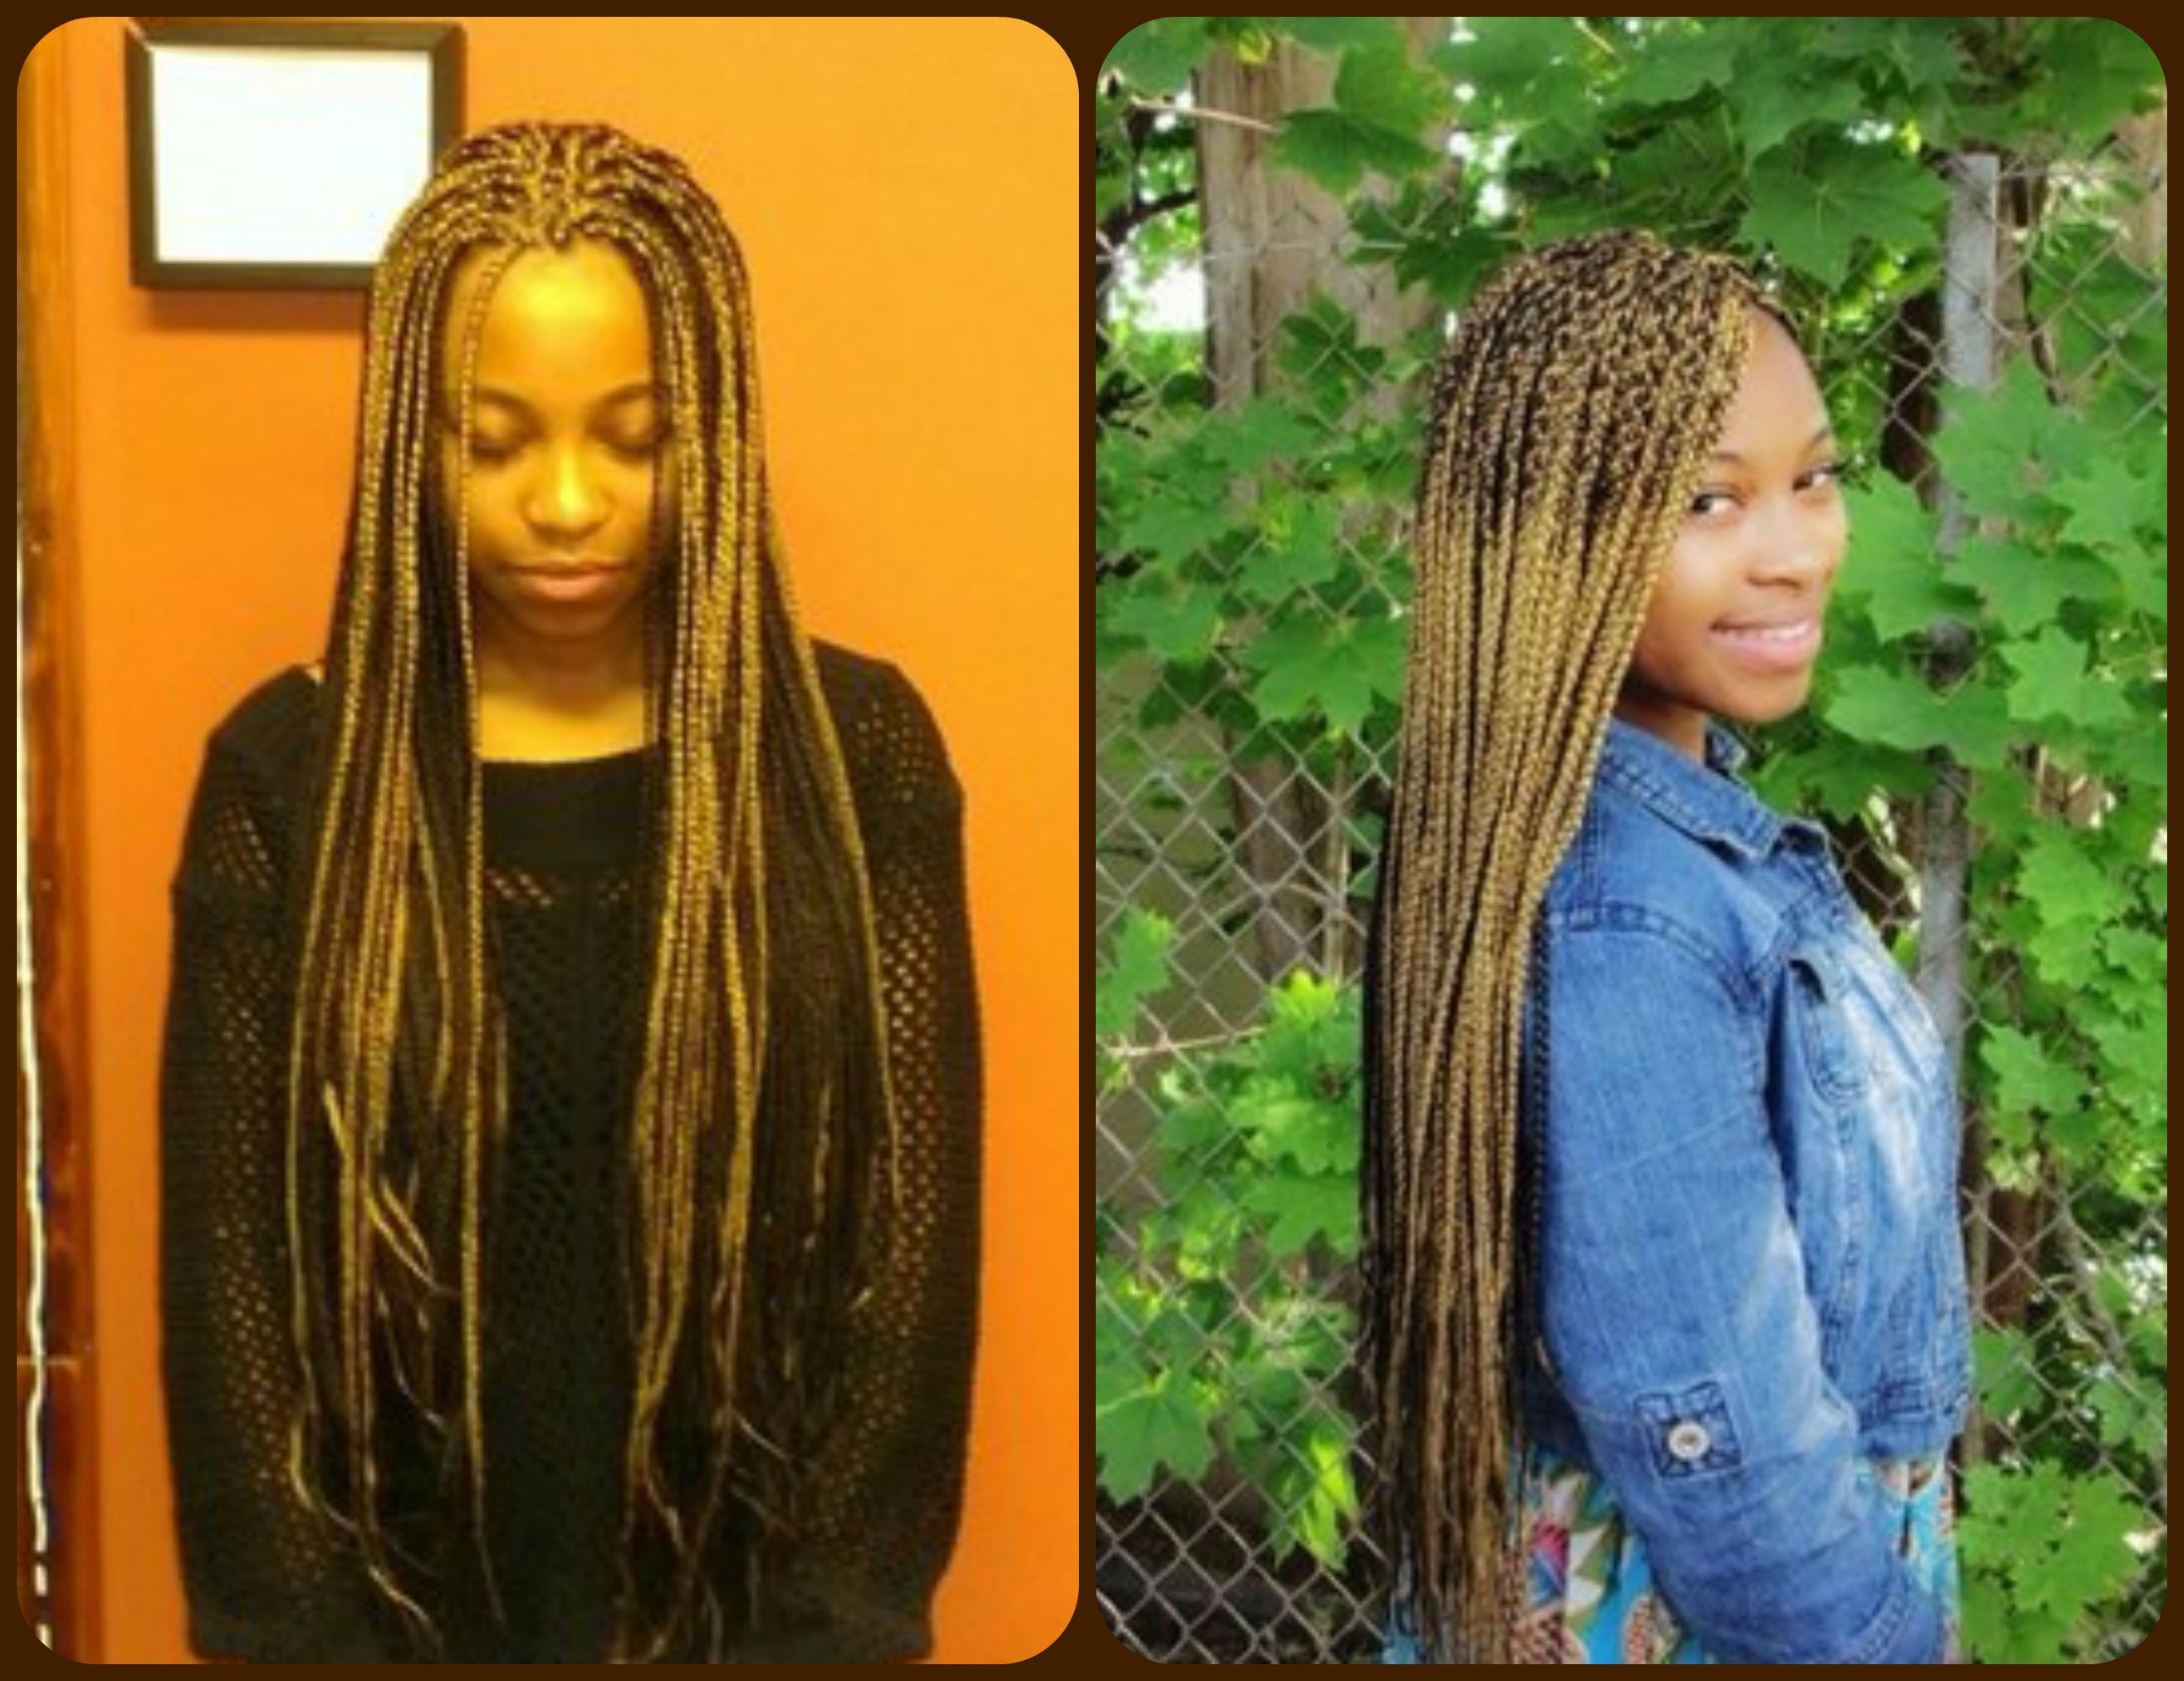 Crochet Braids Nj : Search Results for ?Crochet Braids New Jersey? - Black Hairstyle ...